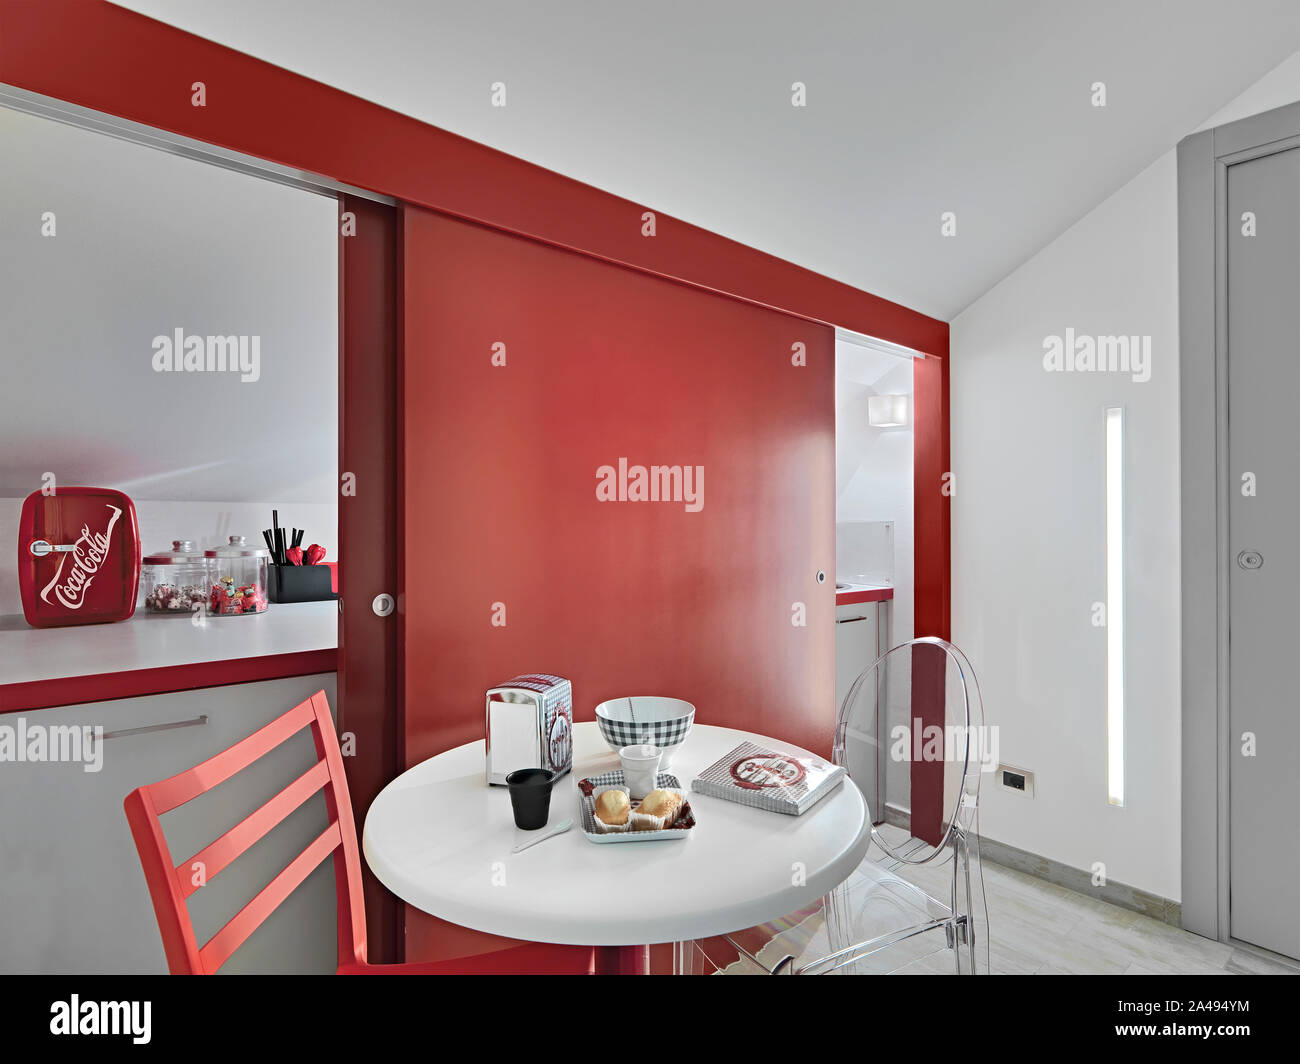 Red Kitchen Cabinet Stock Photos & Red Kitchen Cabinet Stock ...